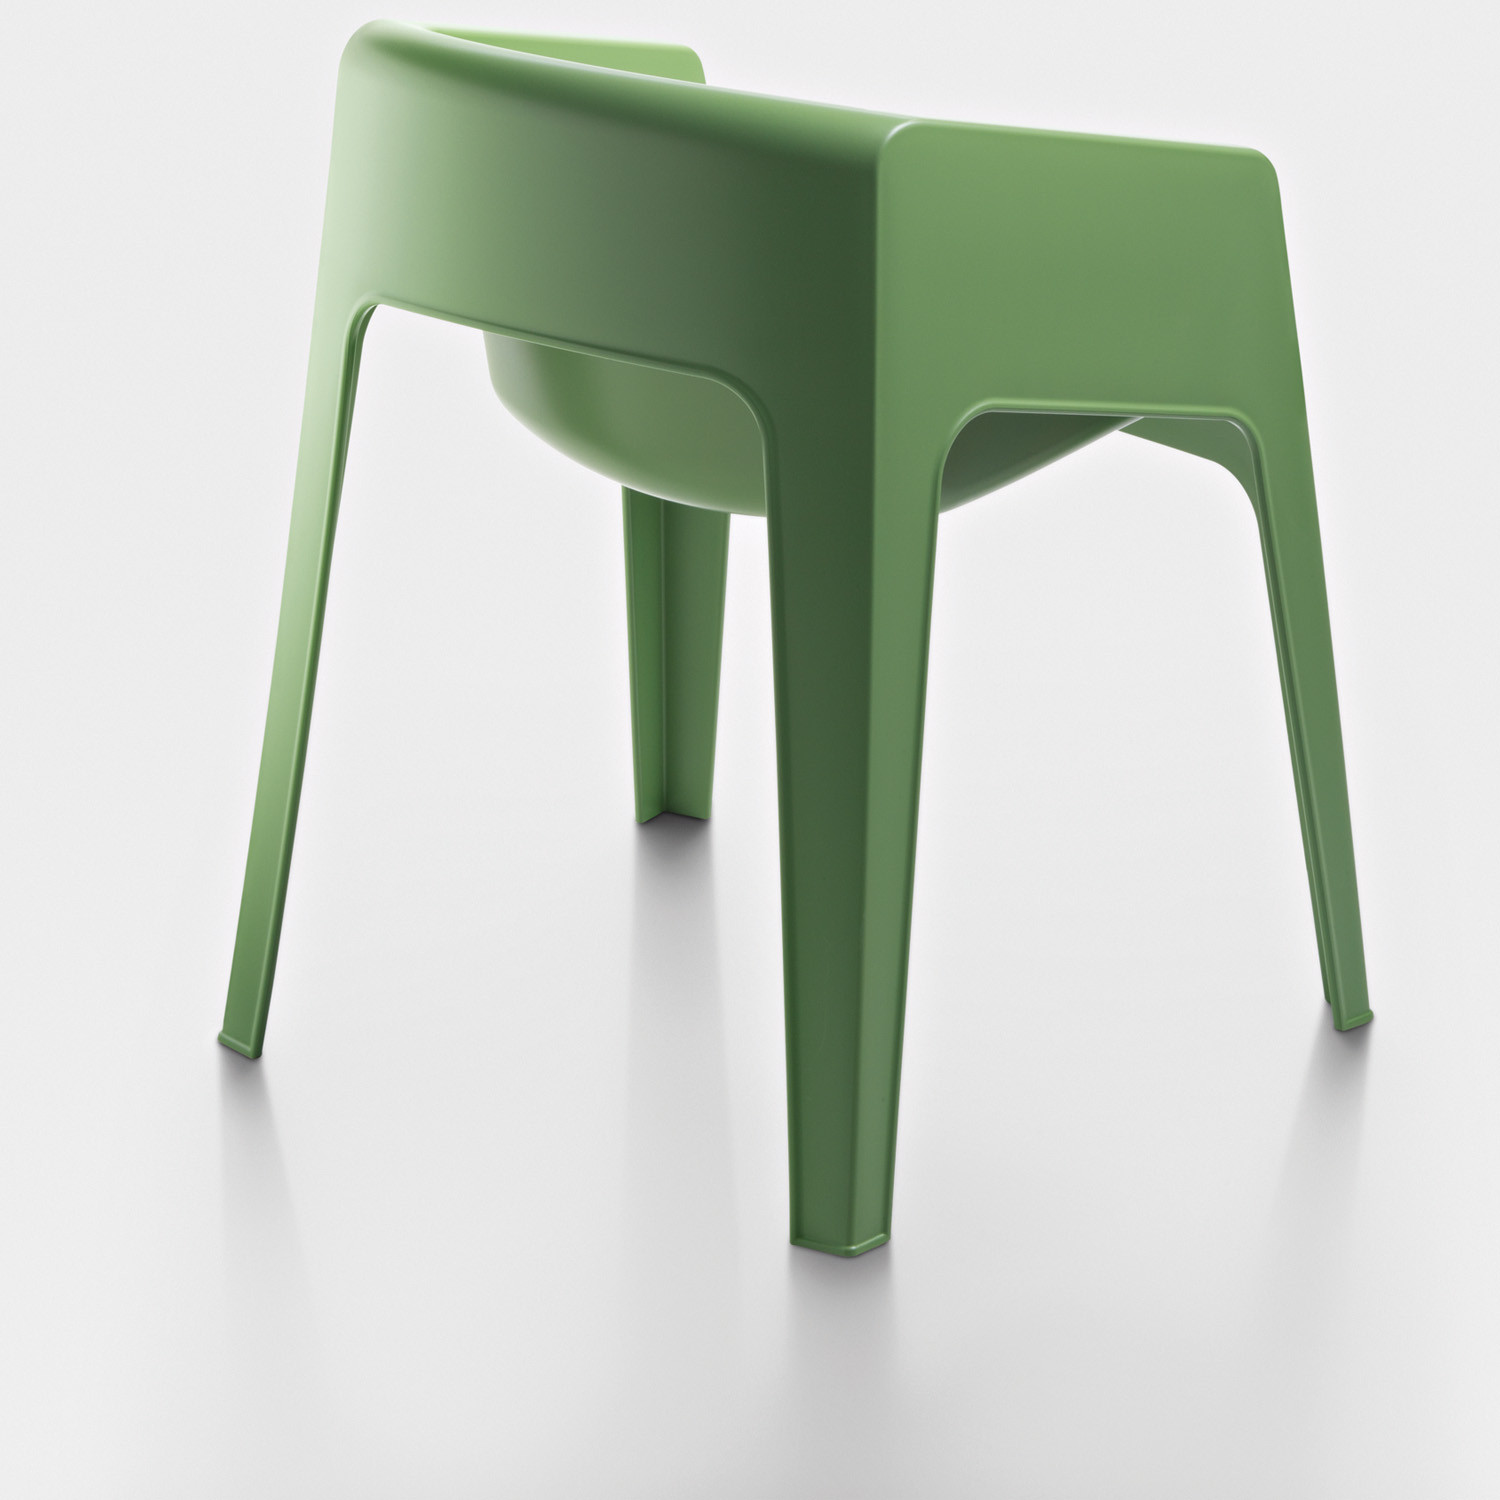 Tototo Chair